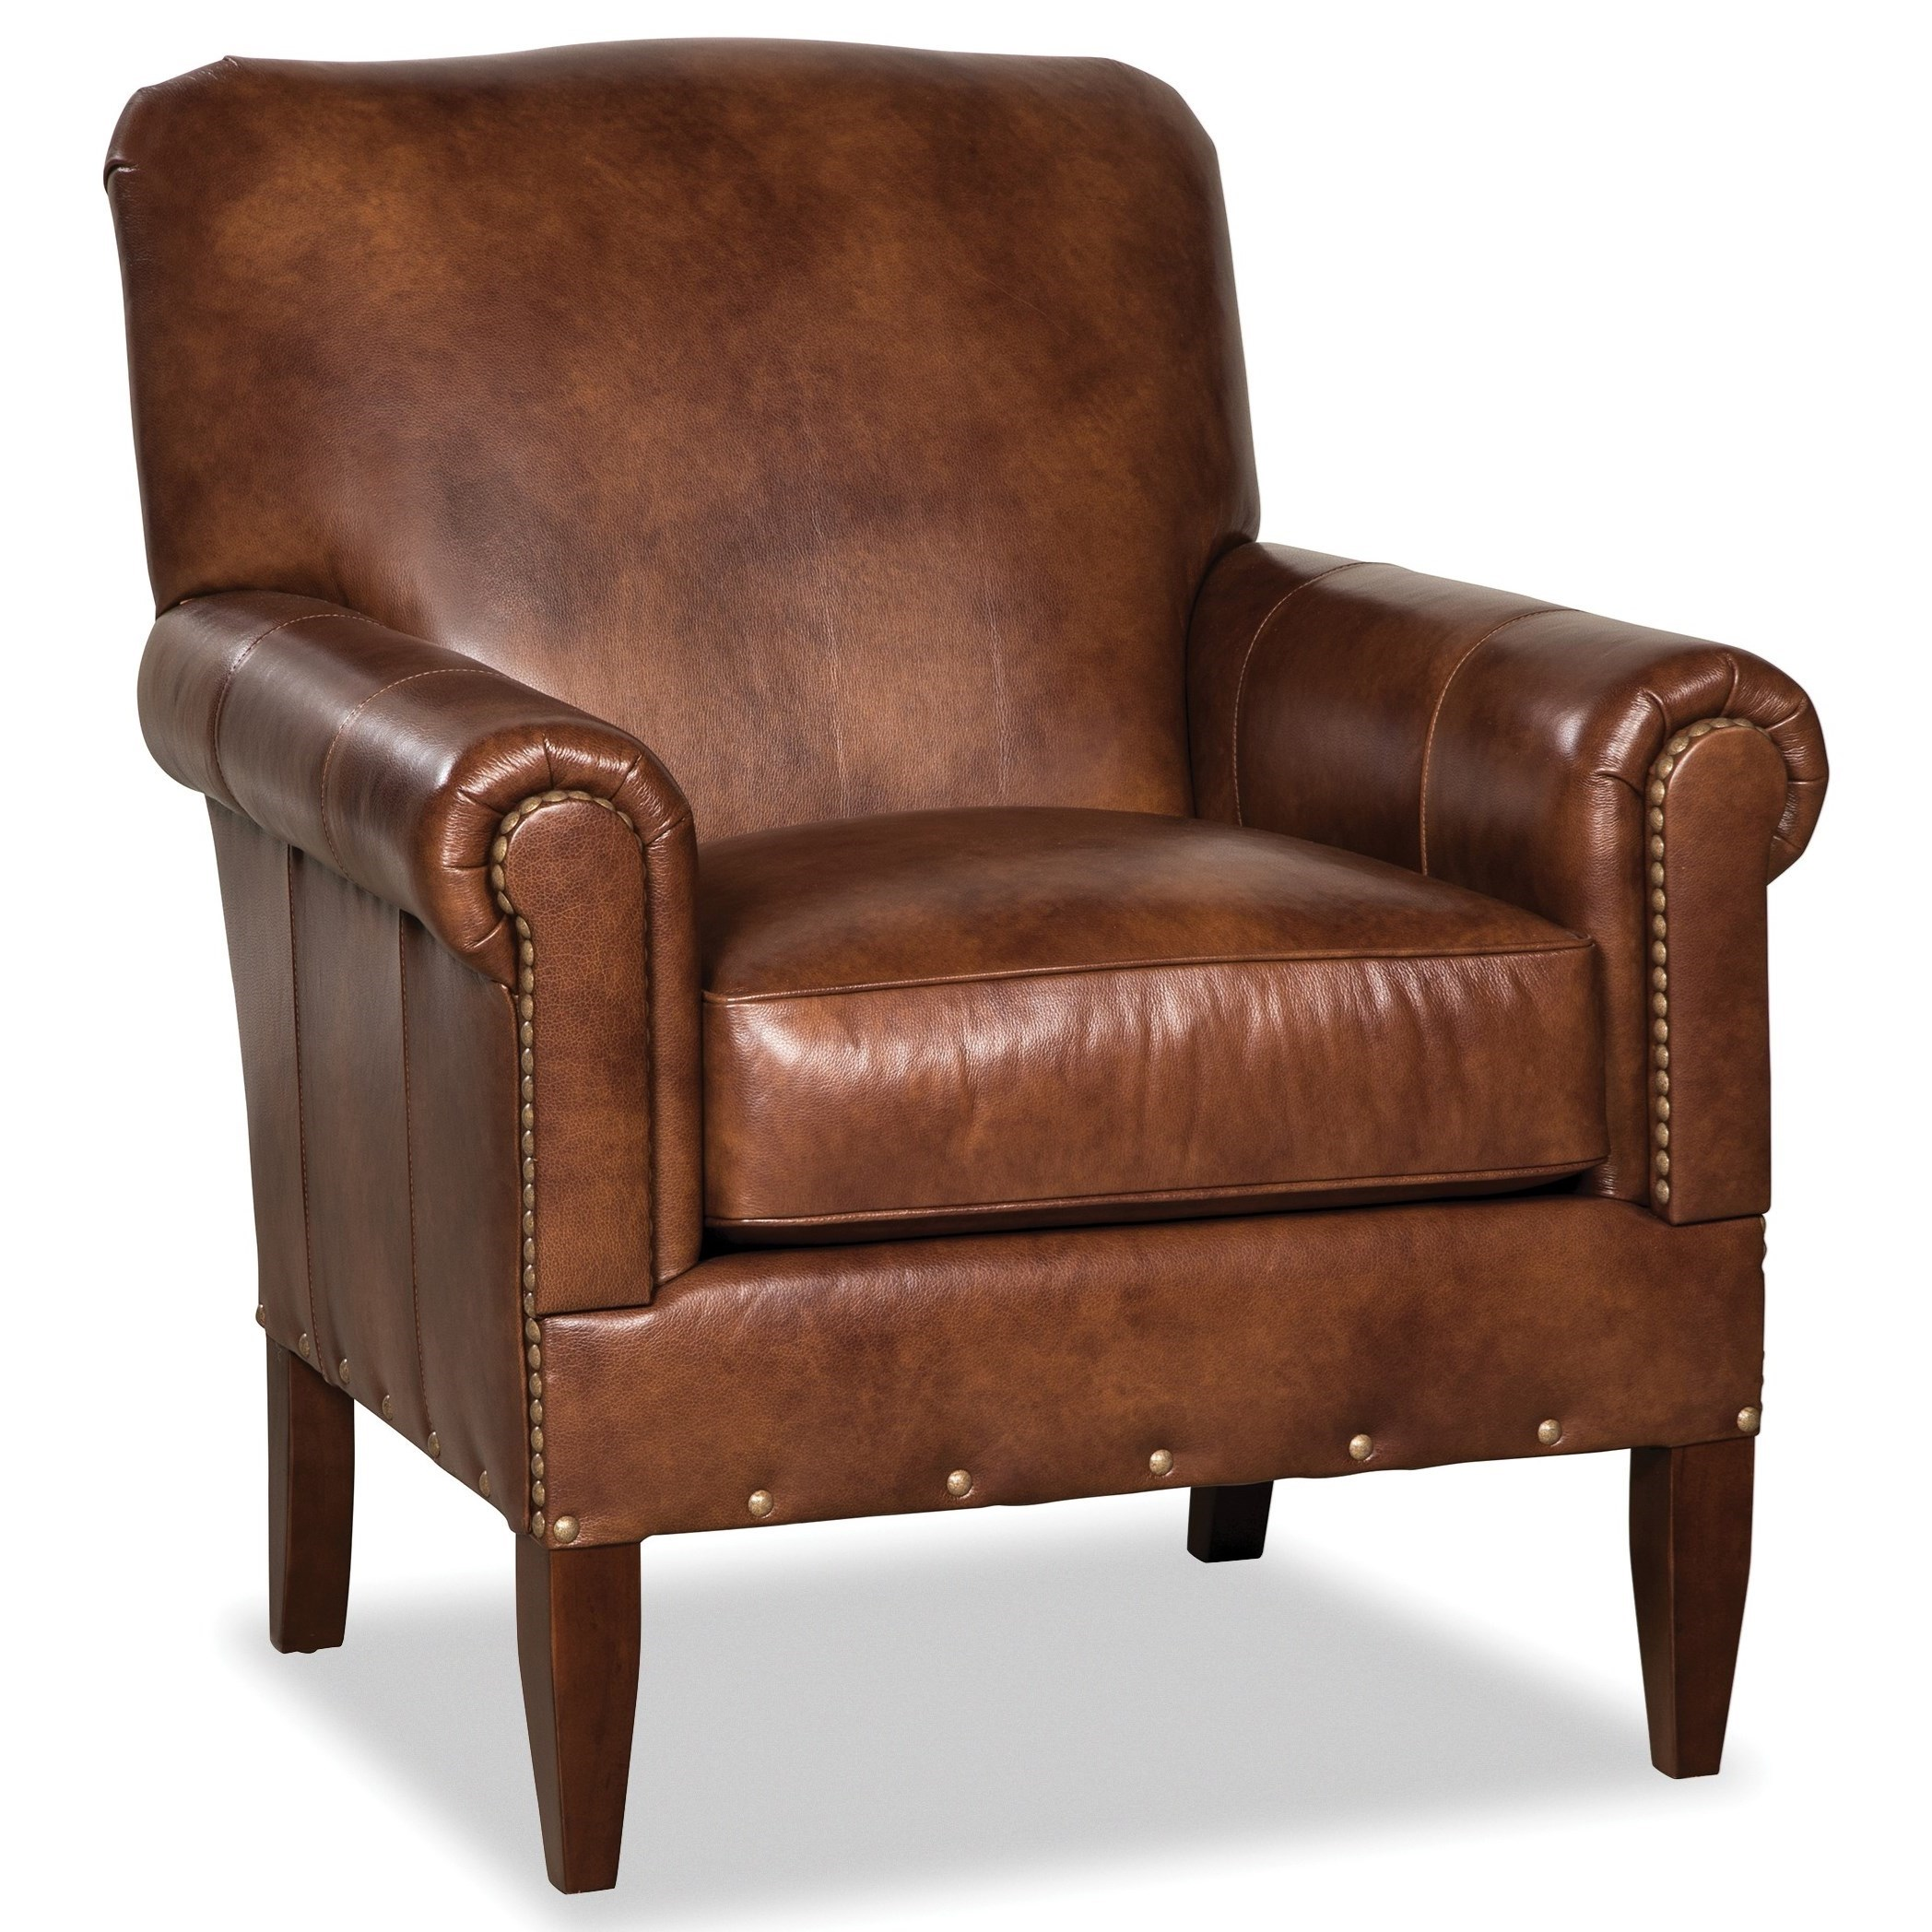 L042410BD Leather Chair by Craftmaster at VanDrie Home Furnishings